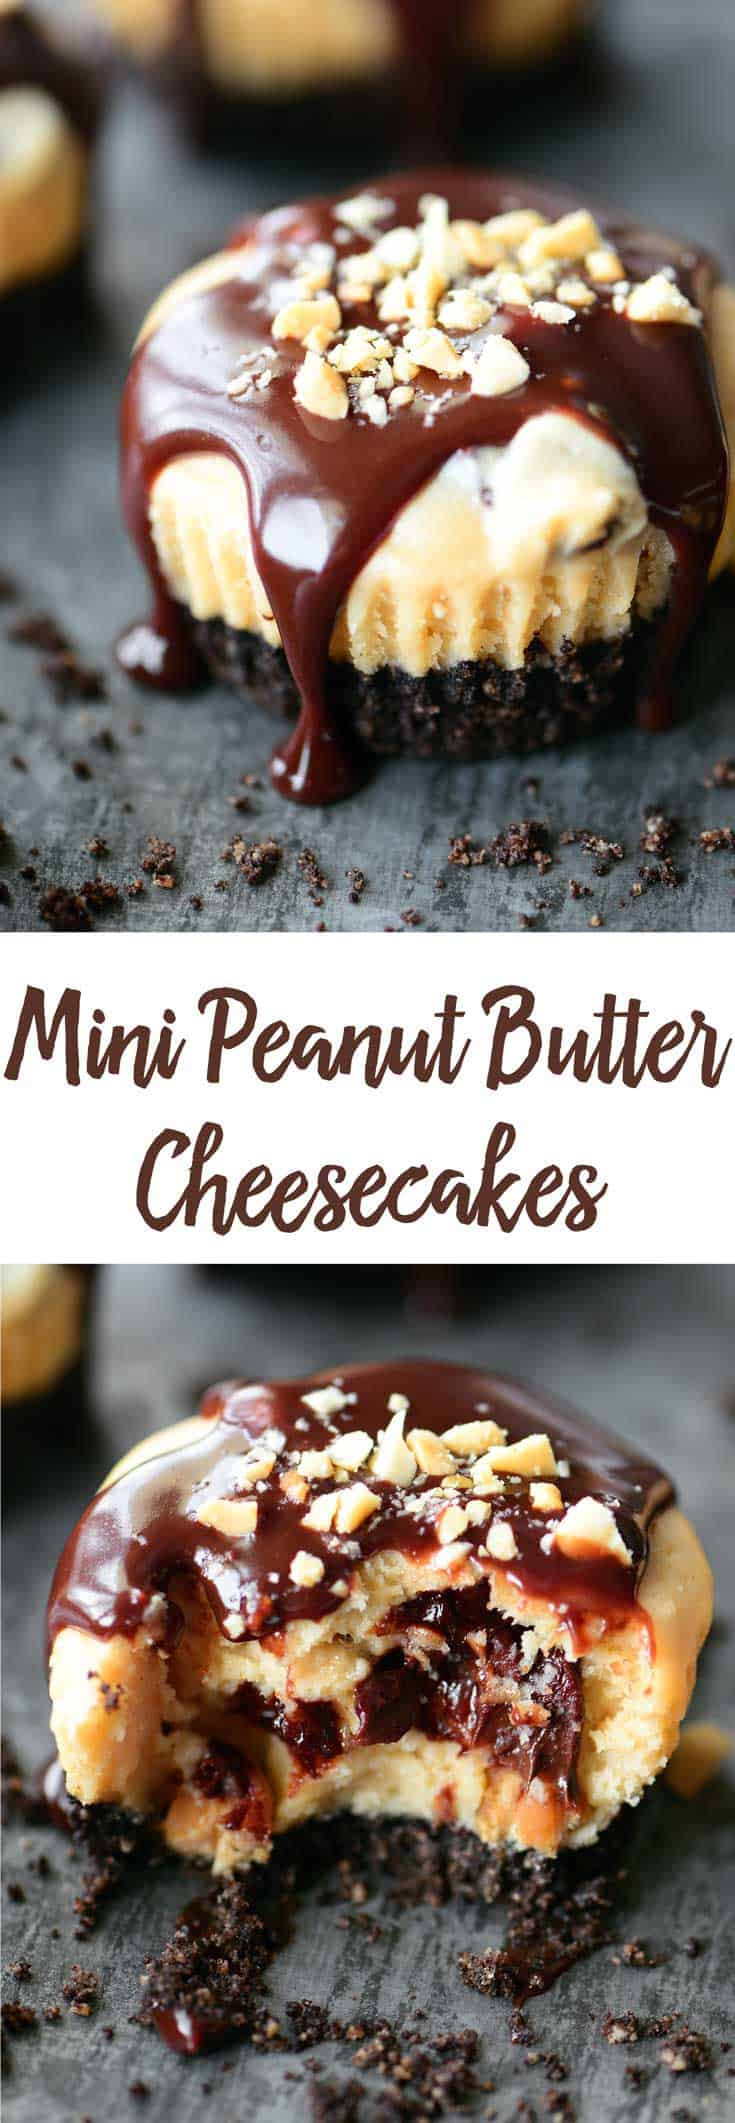 mini peanut butter cheesecakes collage for Pinterest